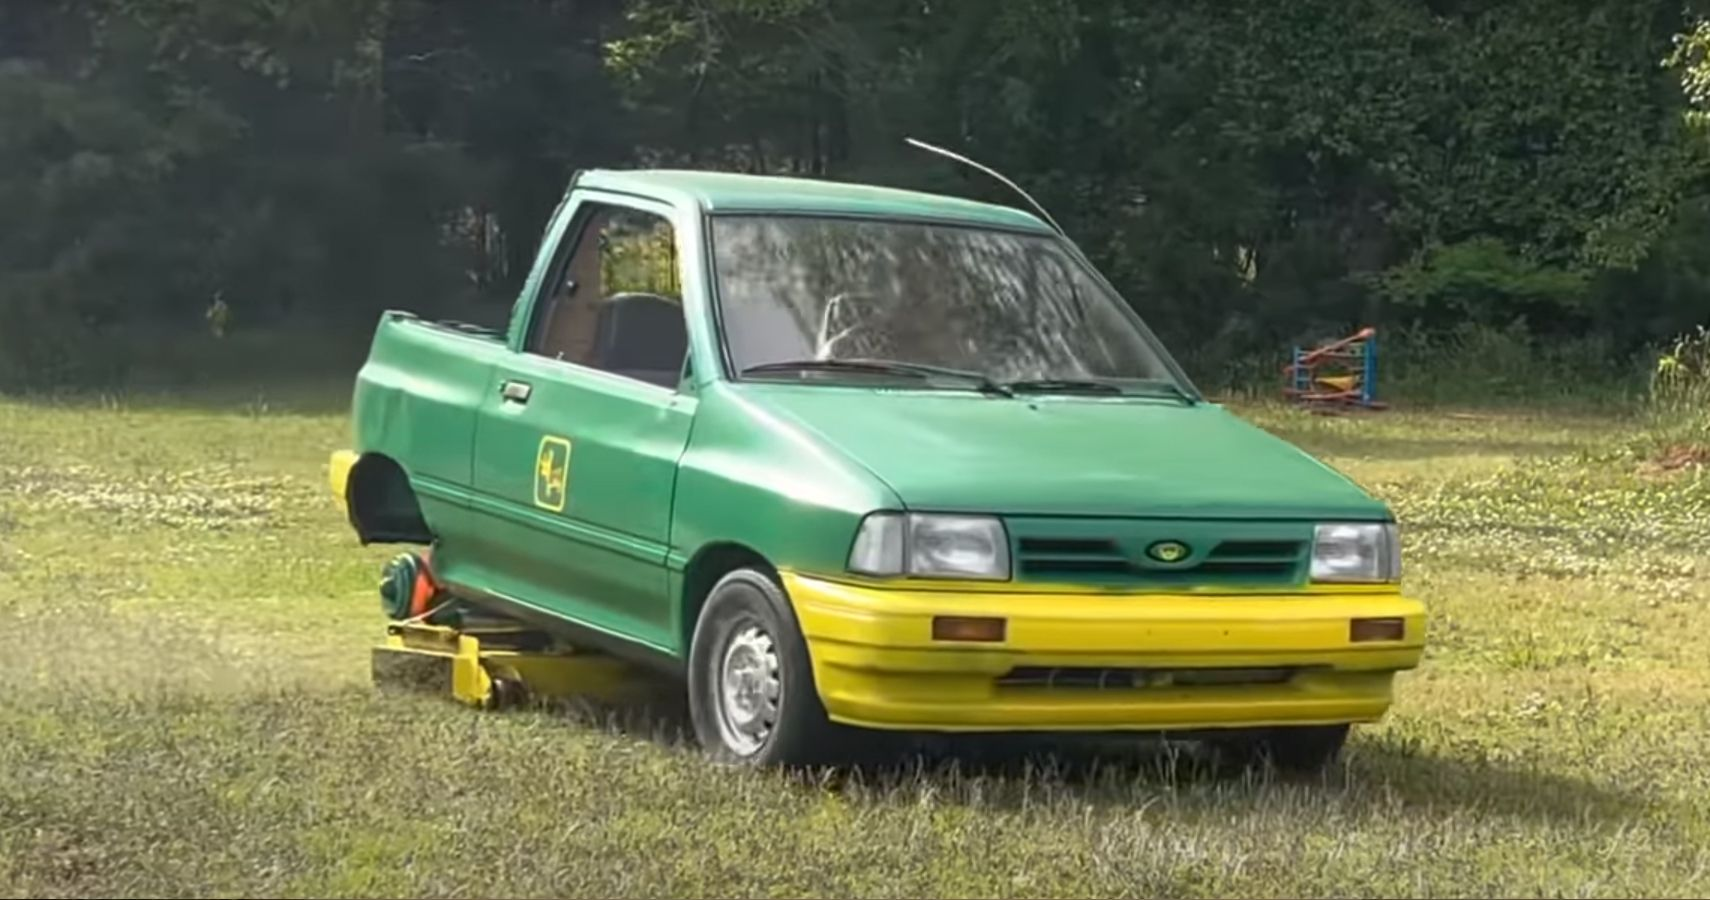 Watch How This Guy Mows His Lawn With What Used To Be A Ford Festiva